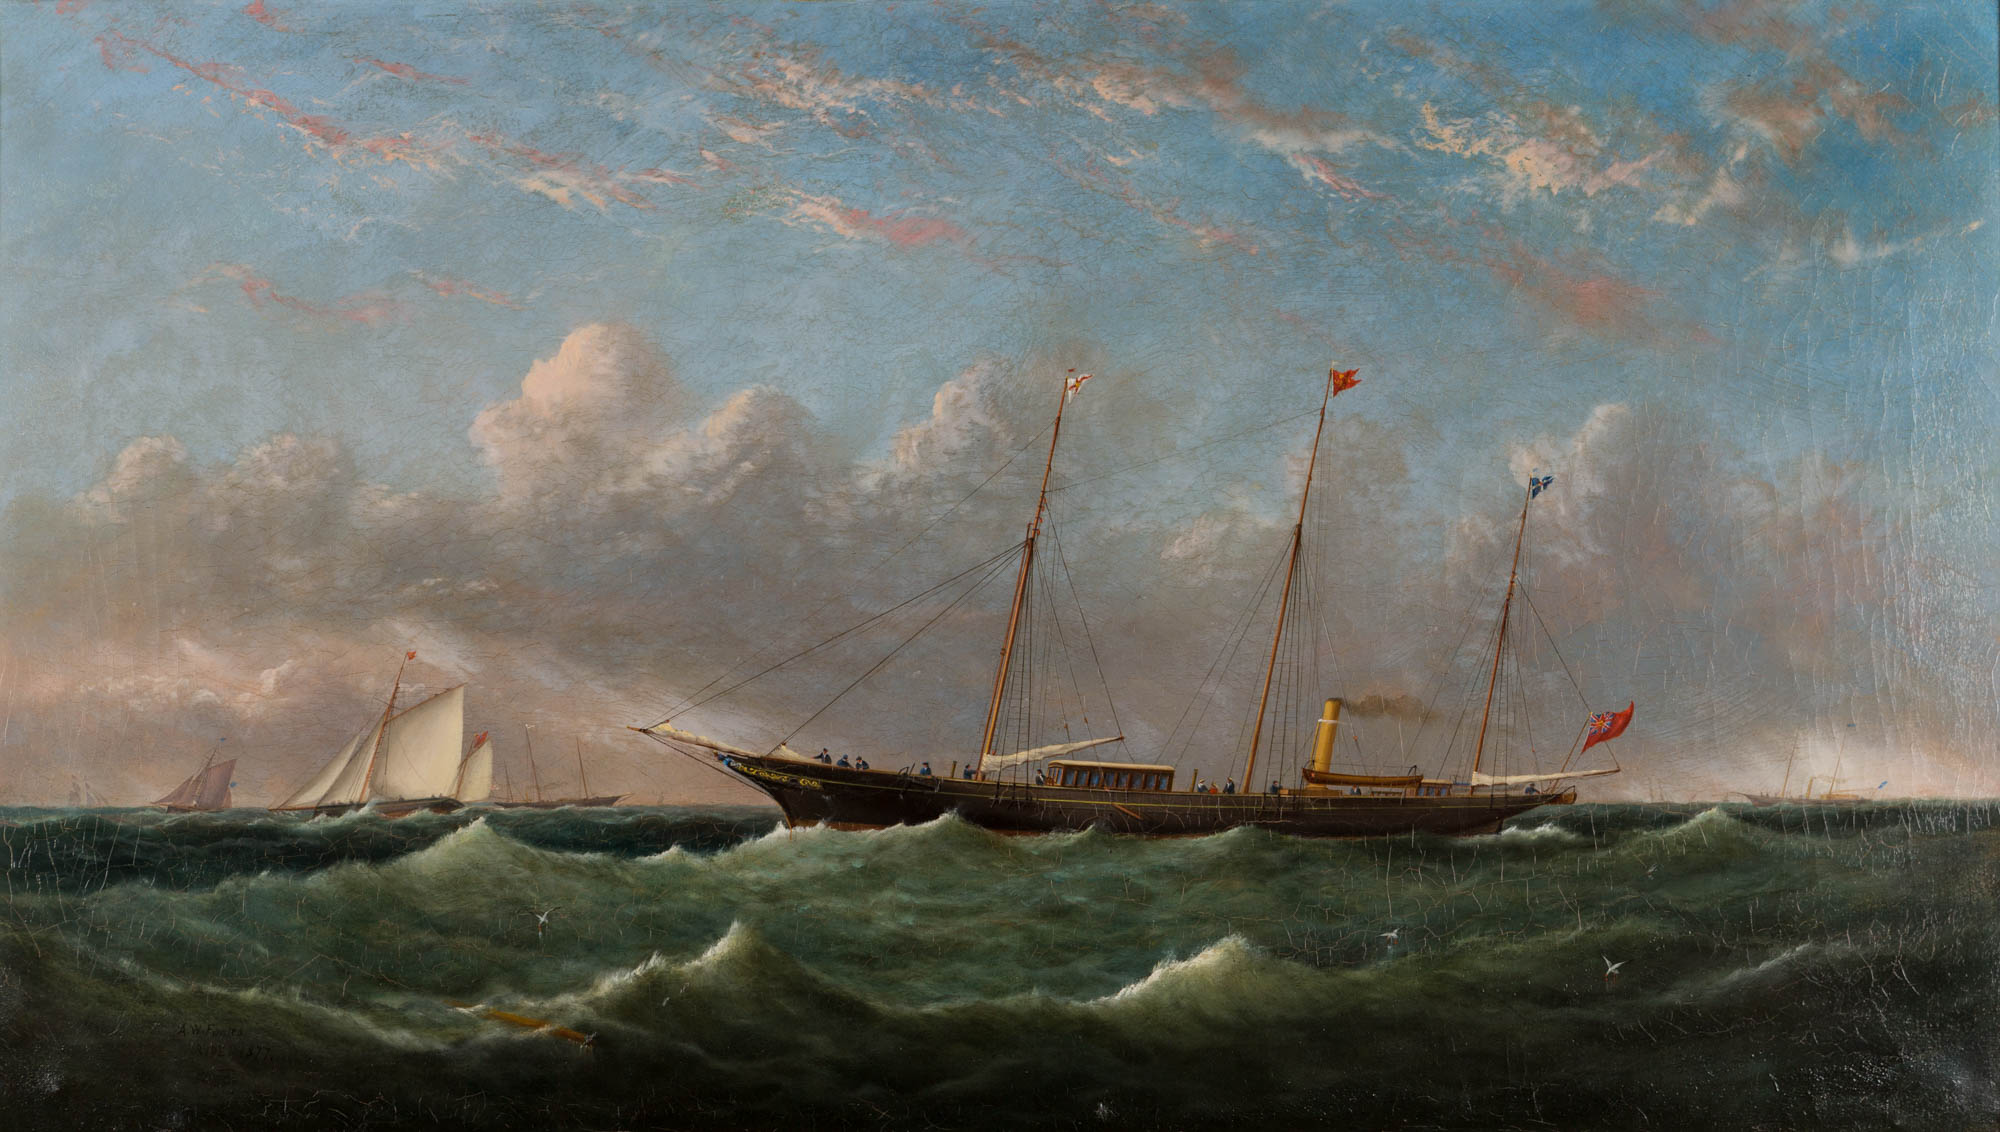 The Steam Yacht Queen of Palmyra, by Arthur Wellington Fowles (1815-1883).